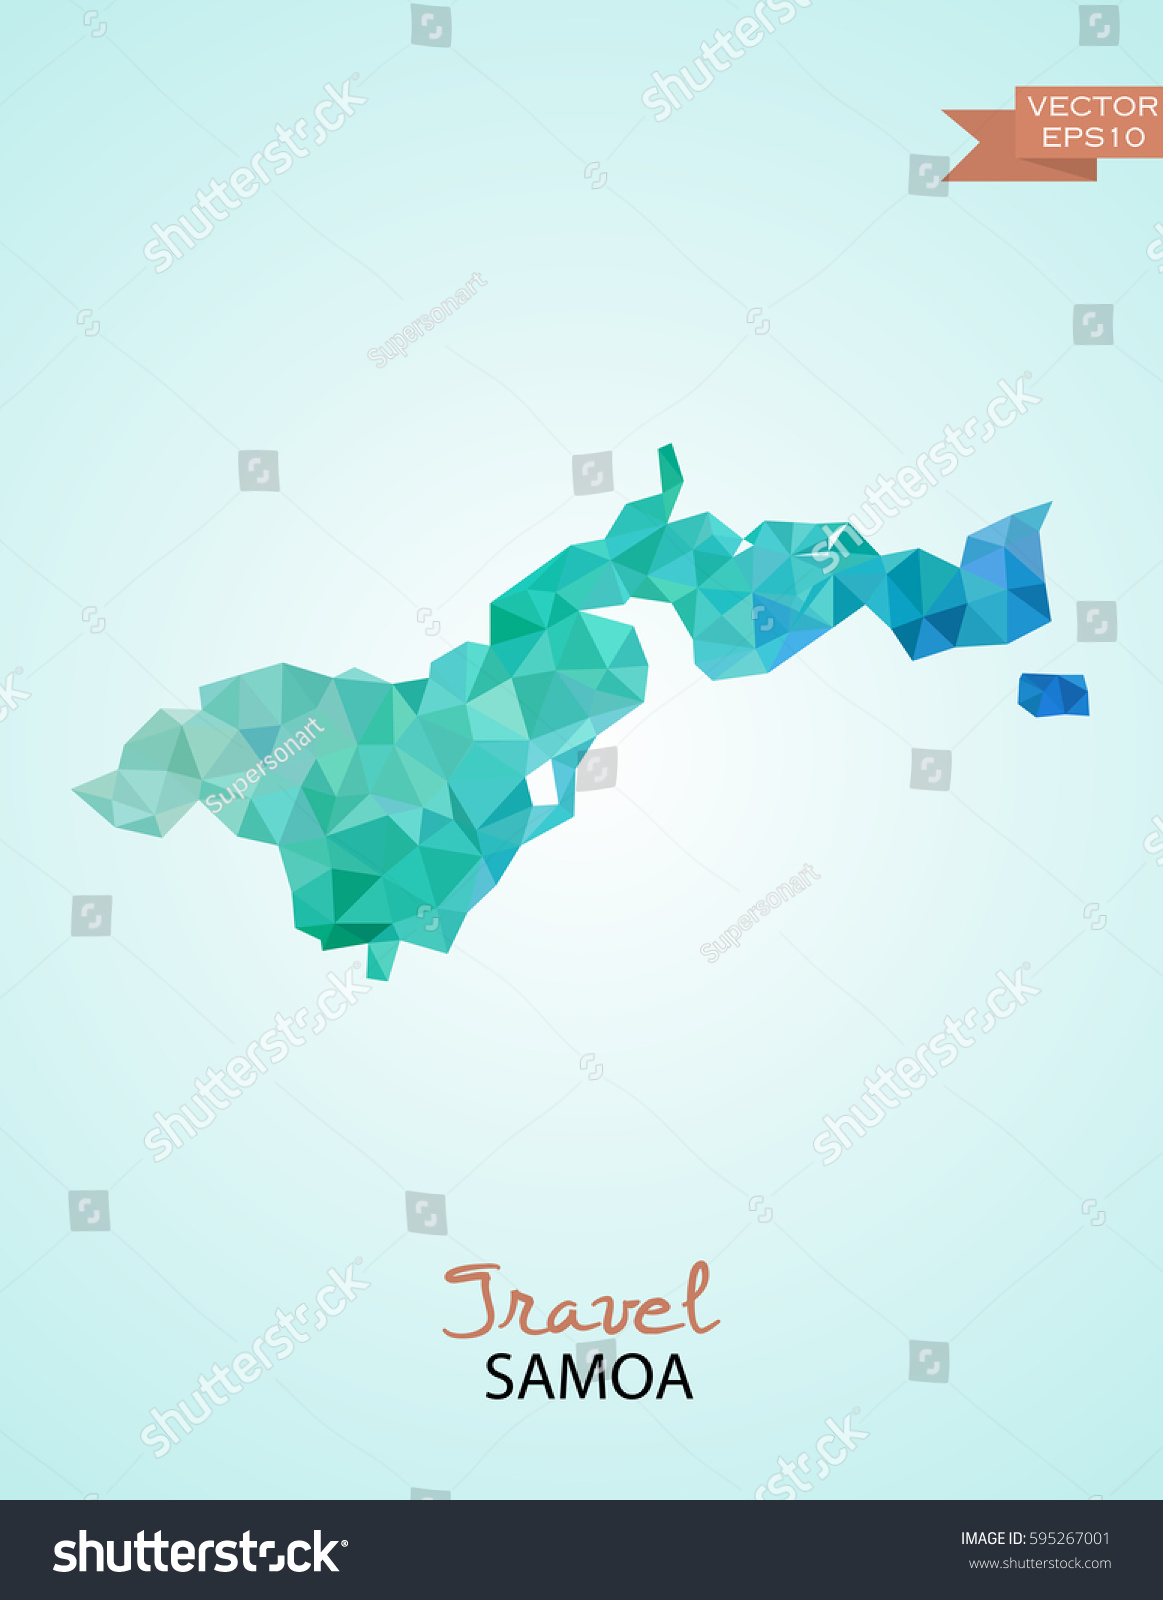 Poly Map Samoa State Isolated On Stock Vector Shutterstock - Samoa map vector